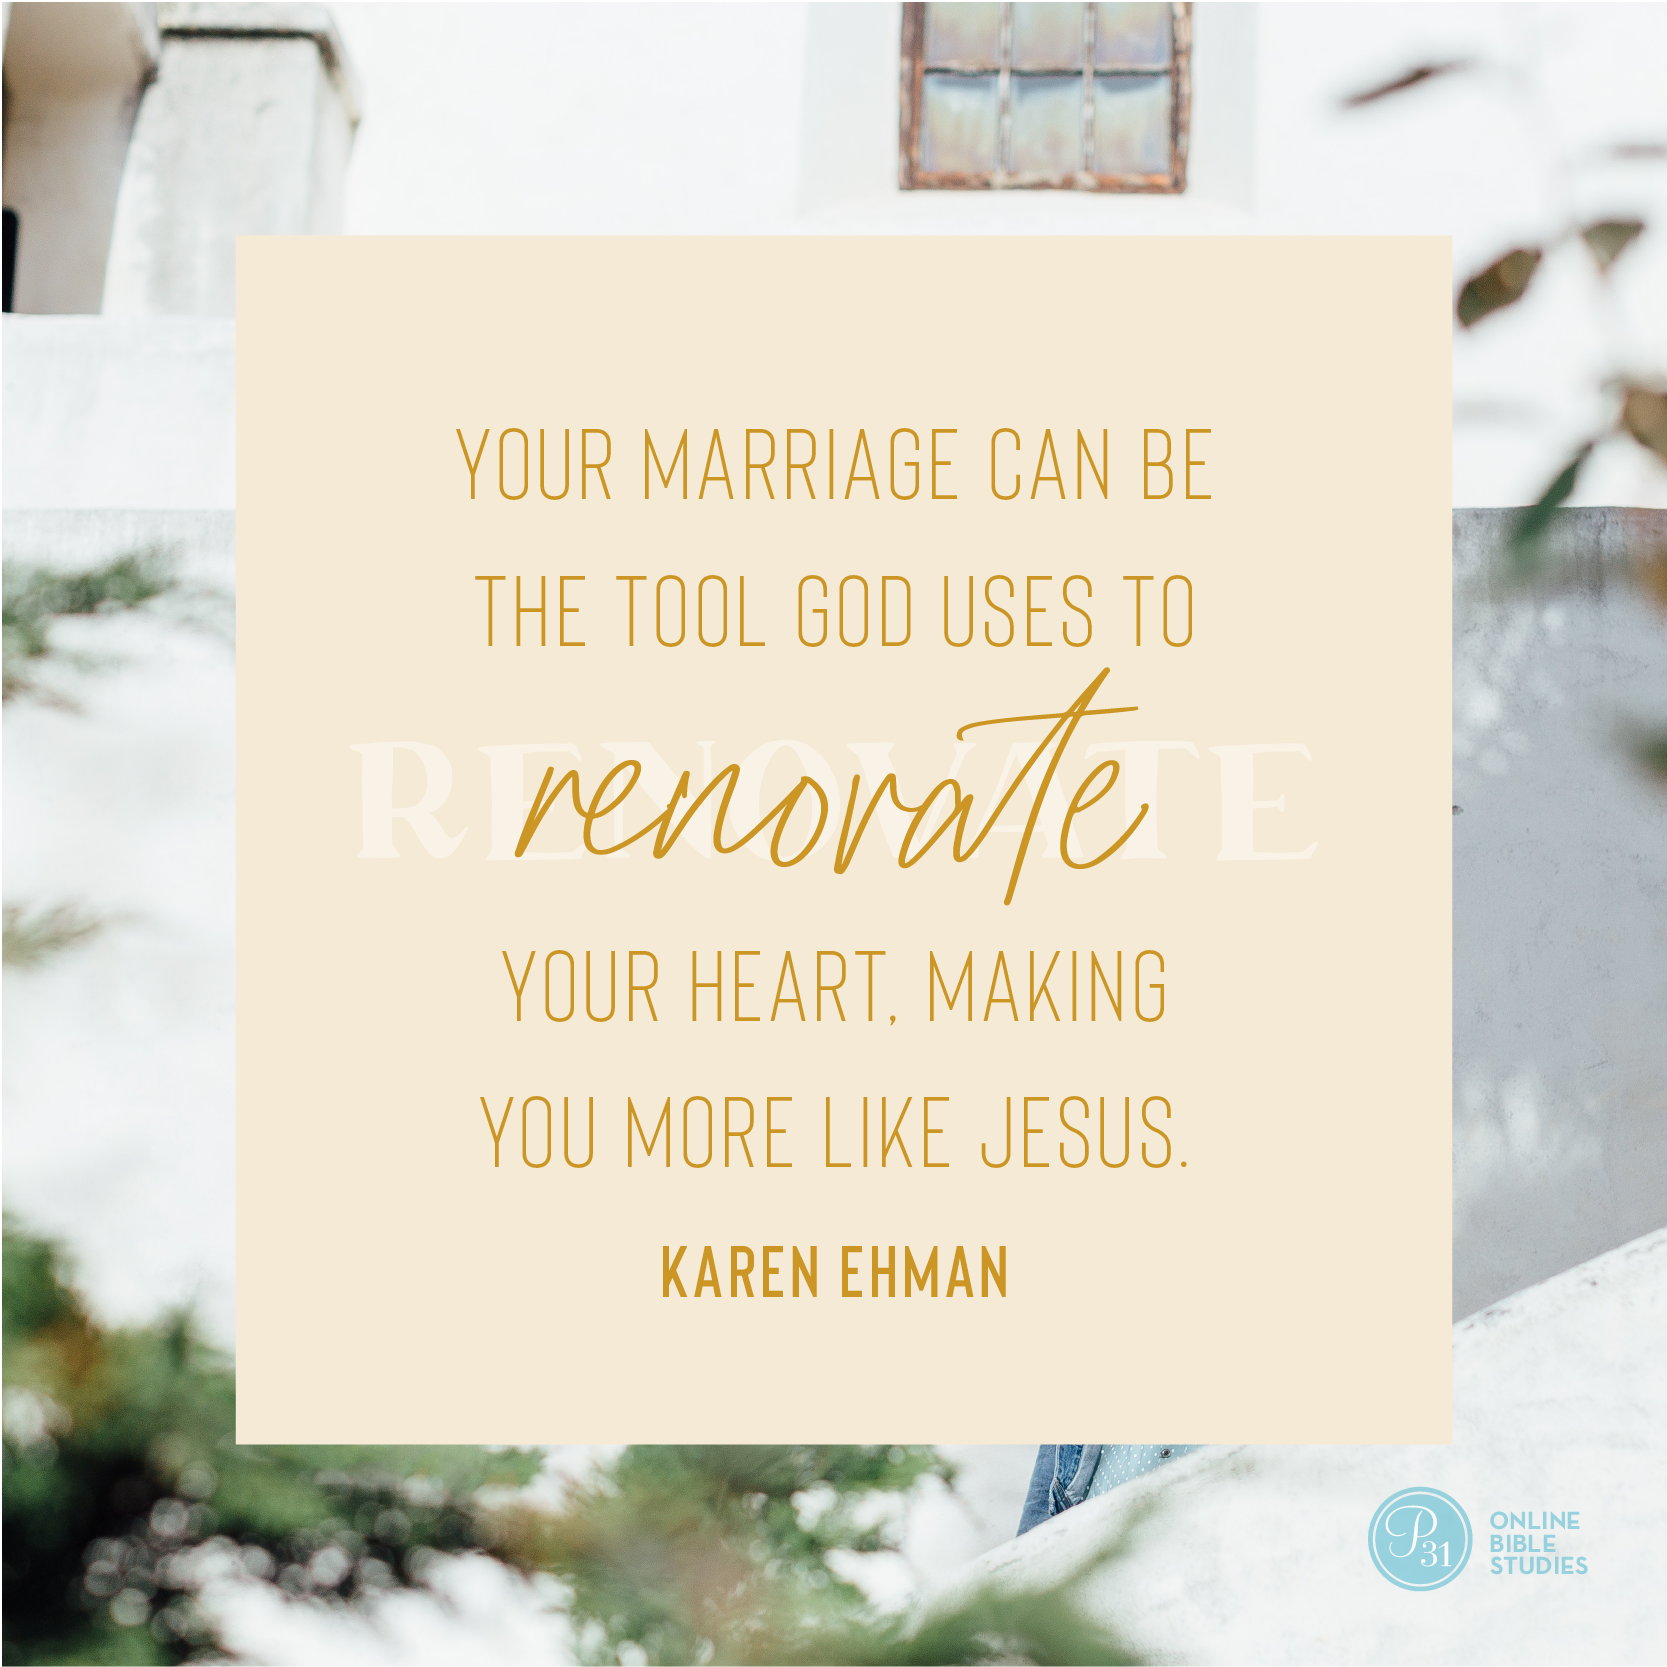 """""""Your marriage can be the tool God uses to renovate your heart, making you more like Jesus."""" - Karen Ehman  #KeepShowingUpBook   Proverbs 31 Online Bible Studies Week 3 #P31OBS"""